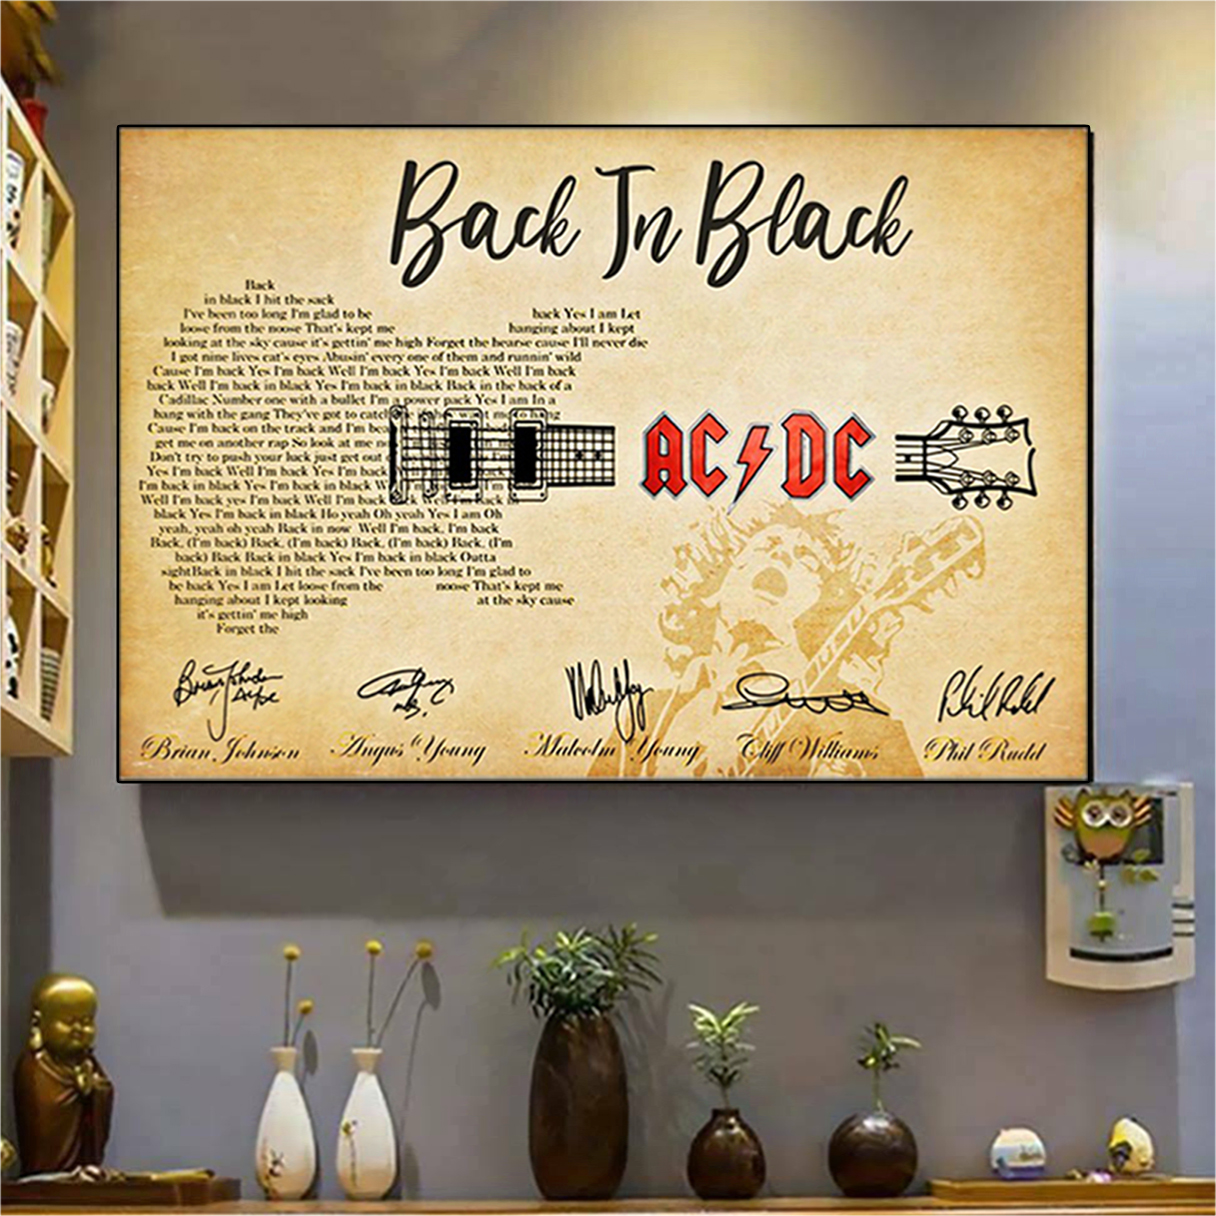 Back in black AC DC guitar poster A3